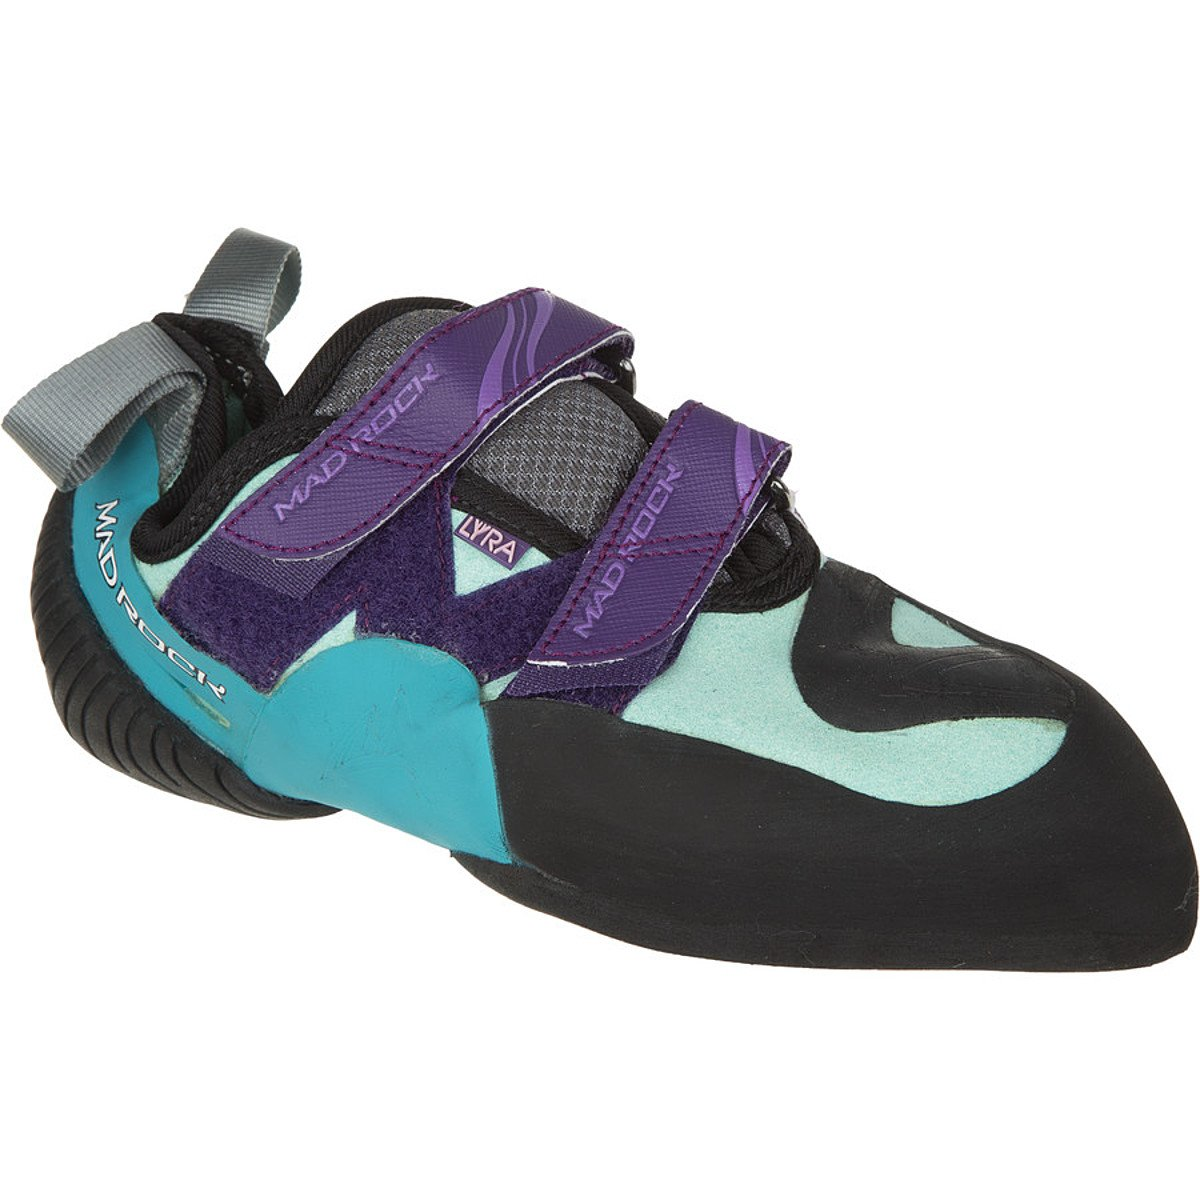 Mad Rock Lyra Climbing Shoes – Women 's B00L8BWLU2 9 B(M) US|Black/Purple/Turquiose Black/Purple/Turquiose 9 B(M) US